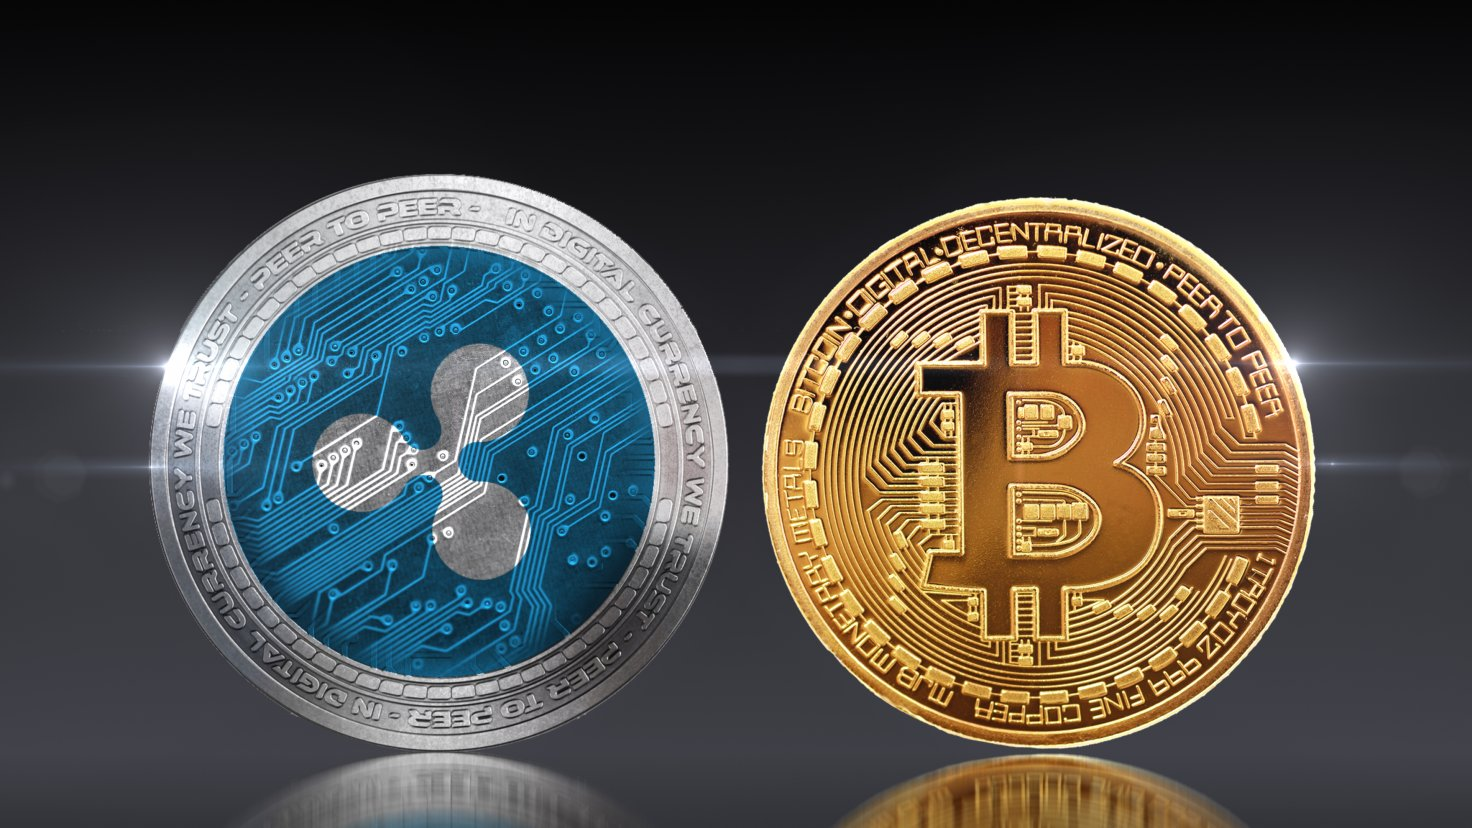 Ripple vs Bitcoin: which one's better? | Currency.com